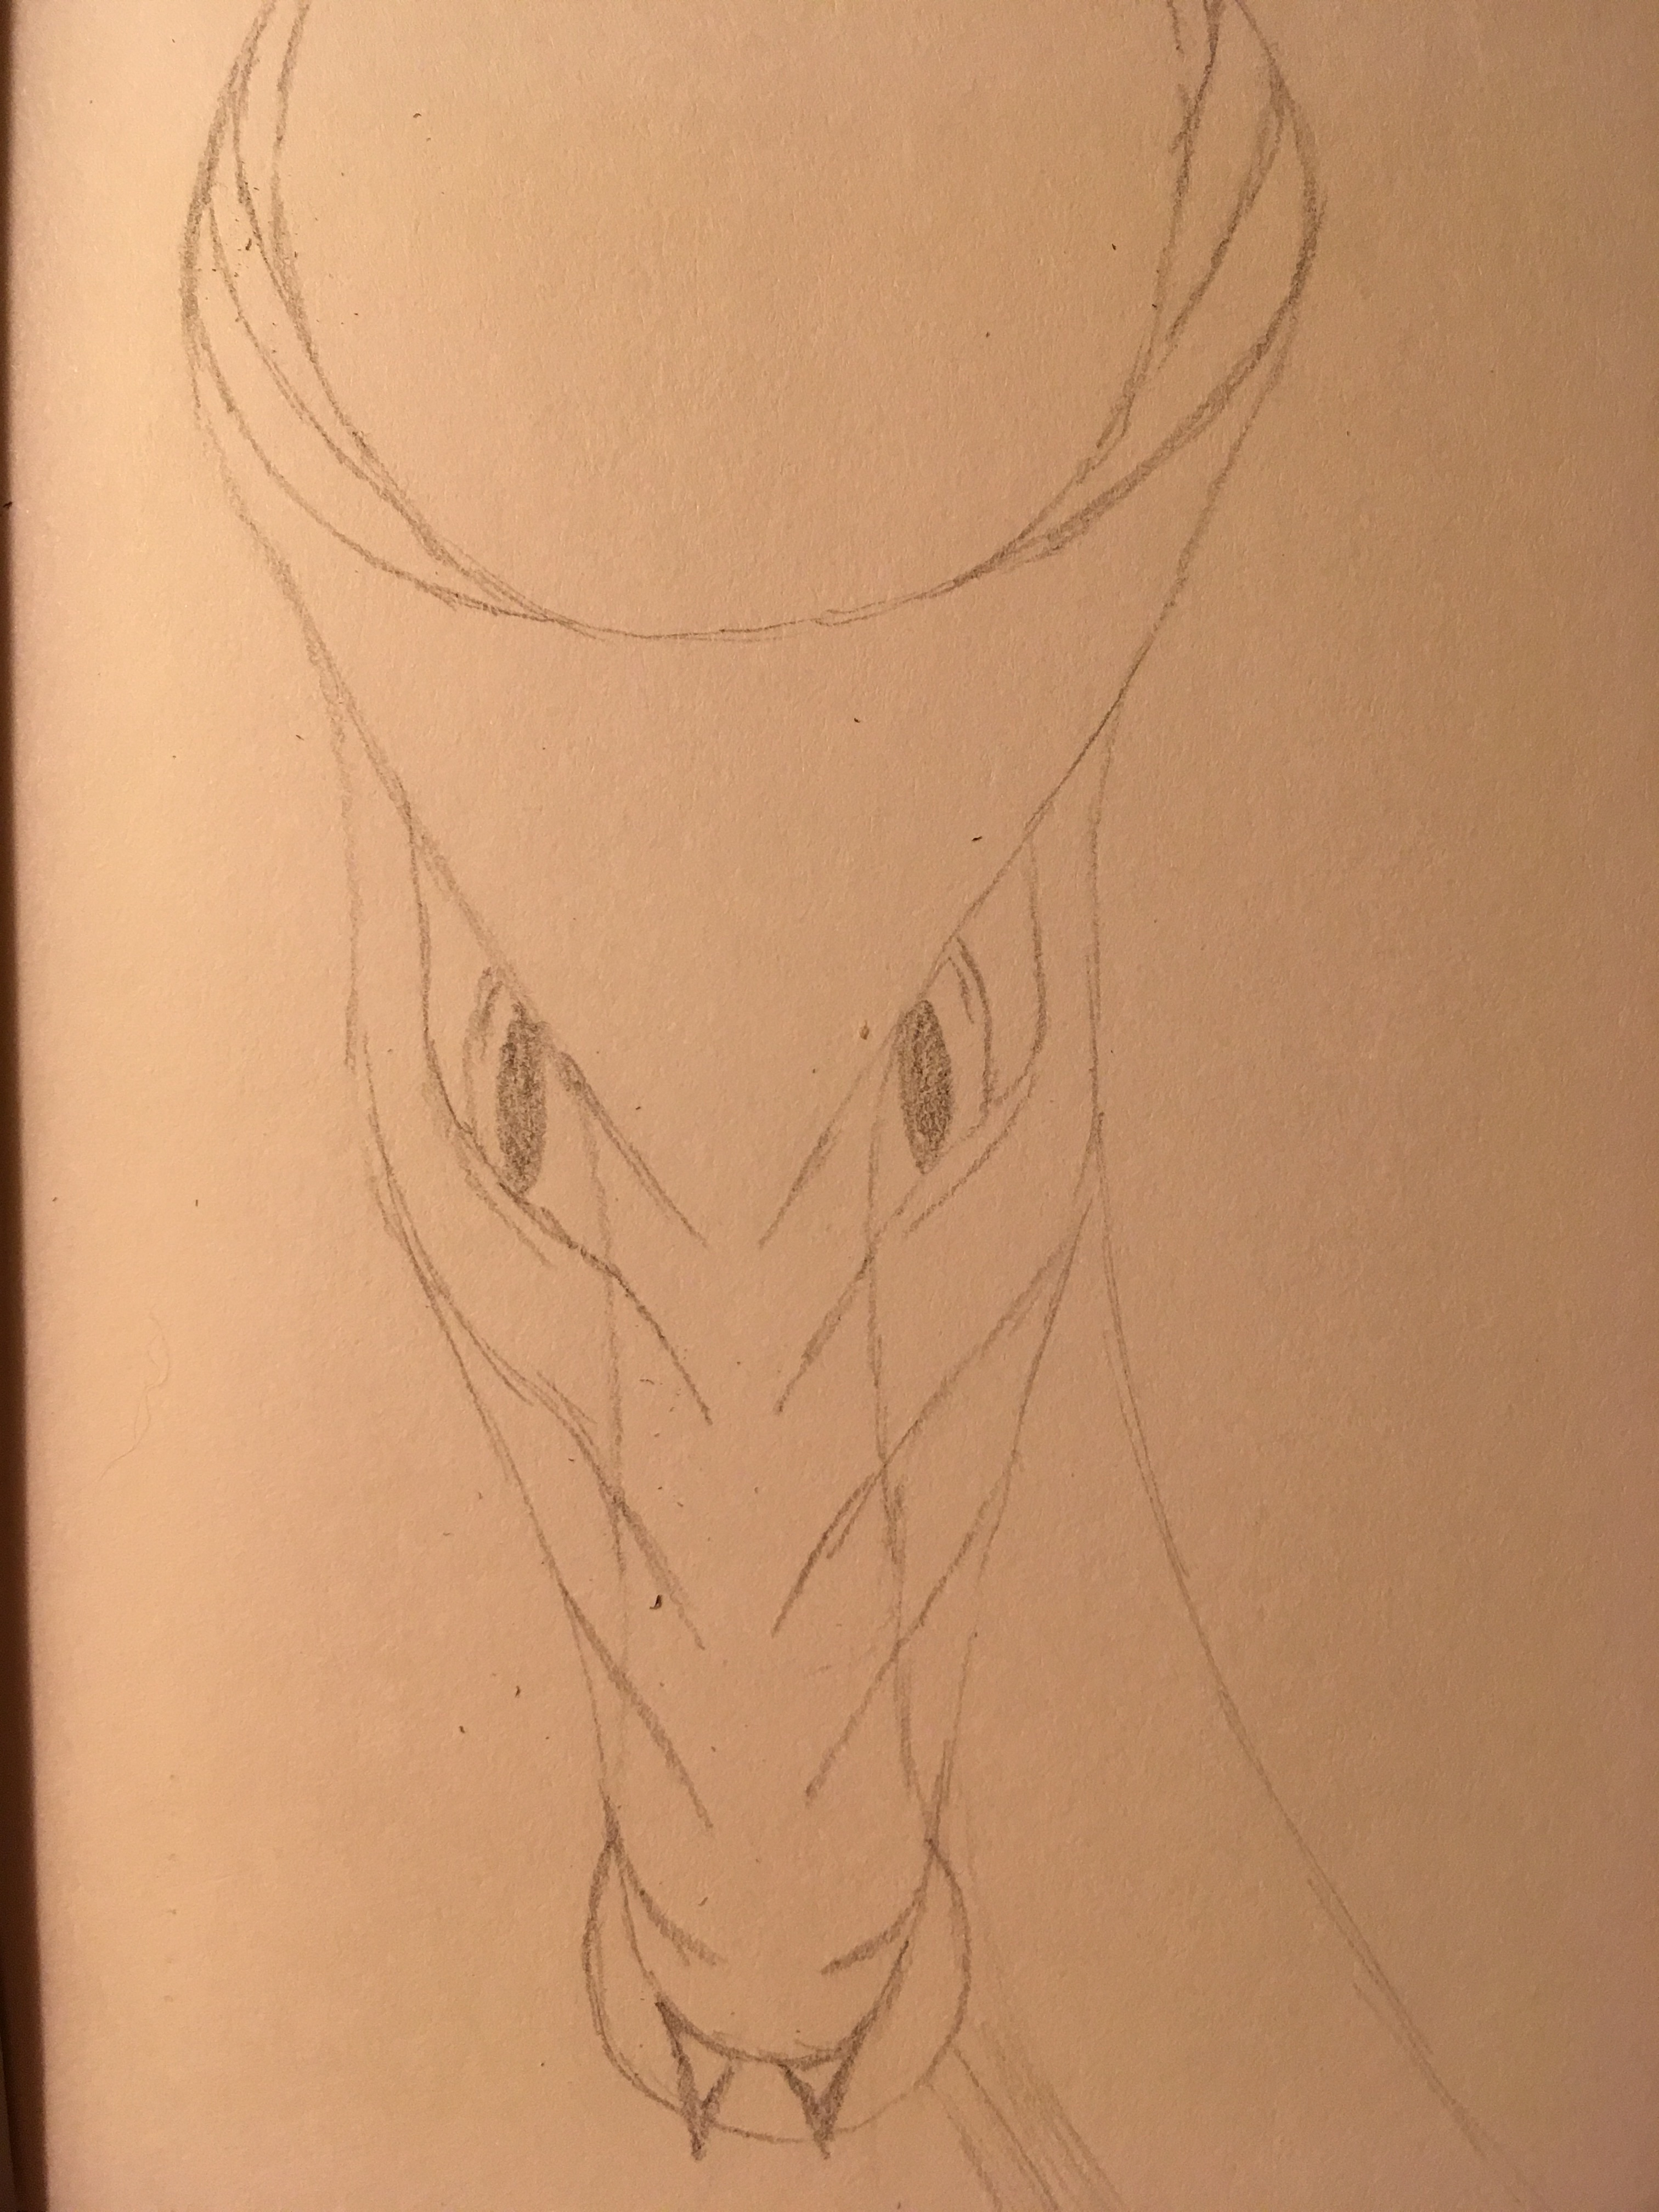 Straightforward face in pencil of a dragon